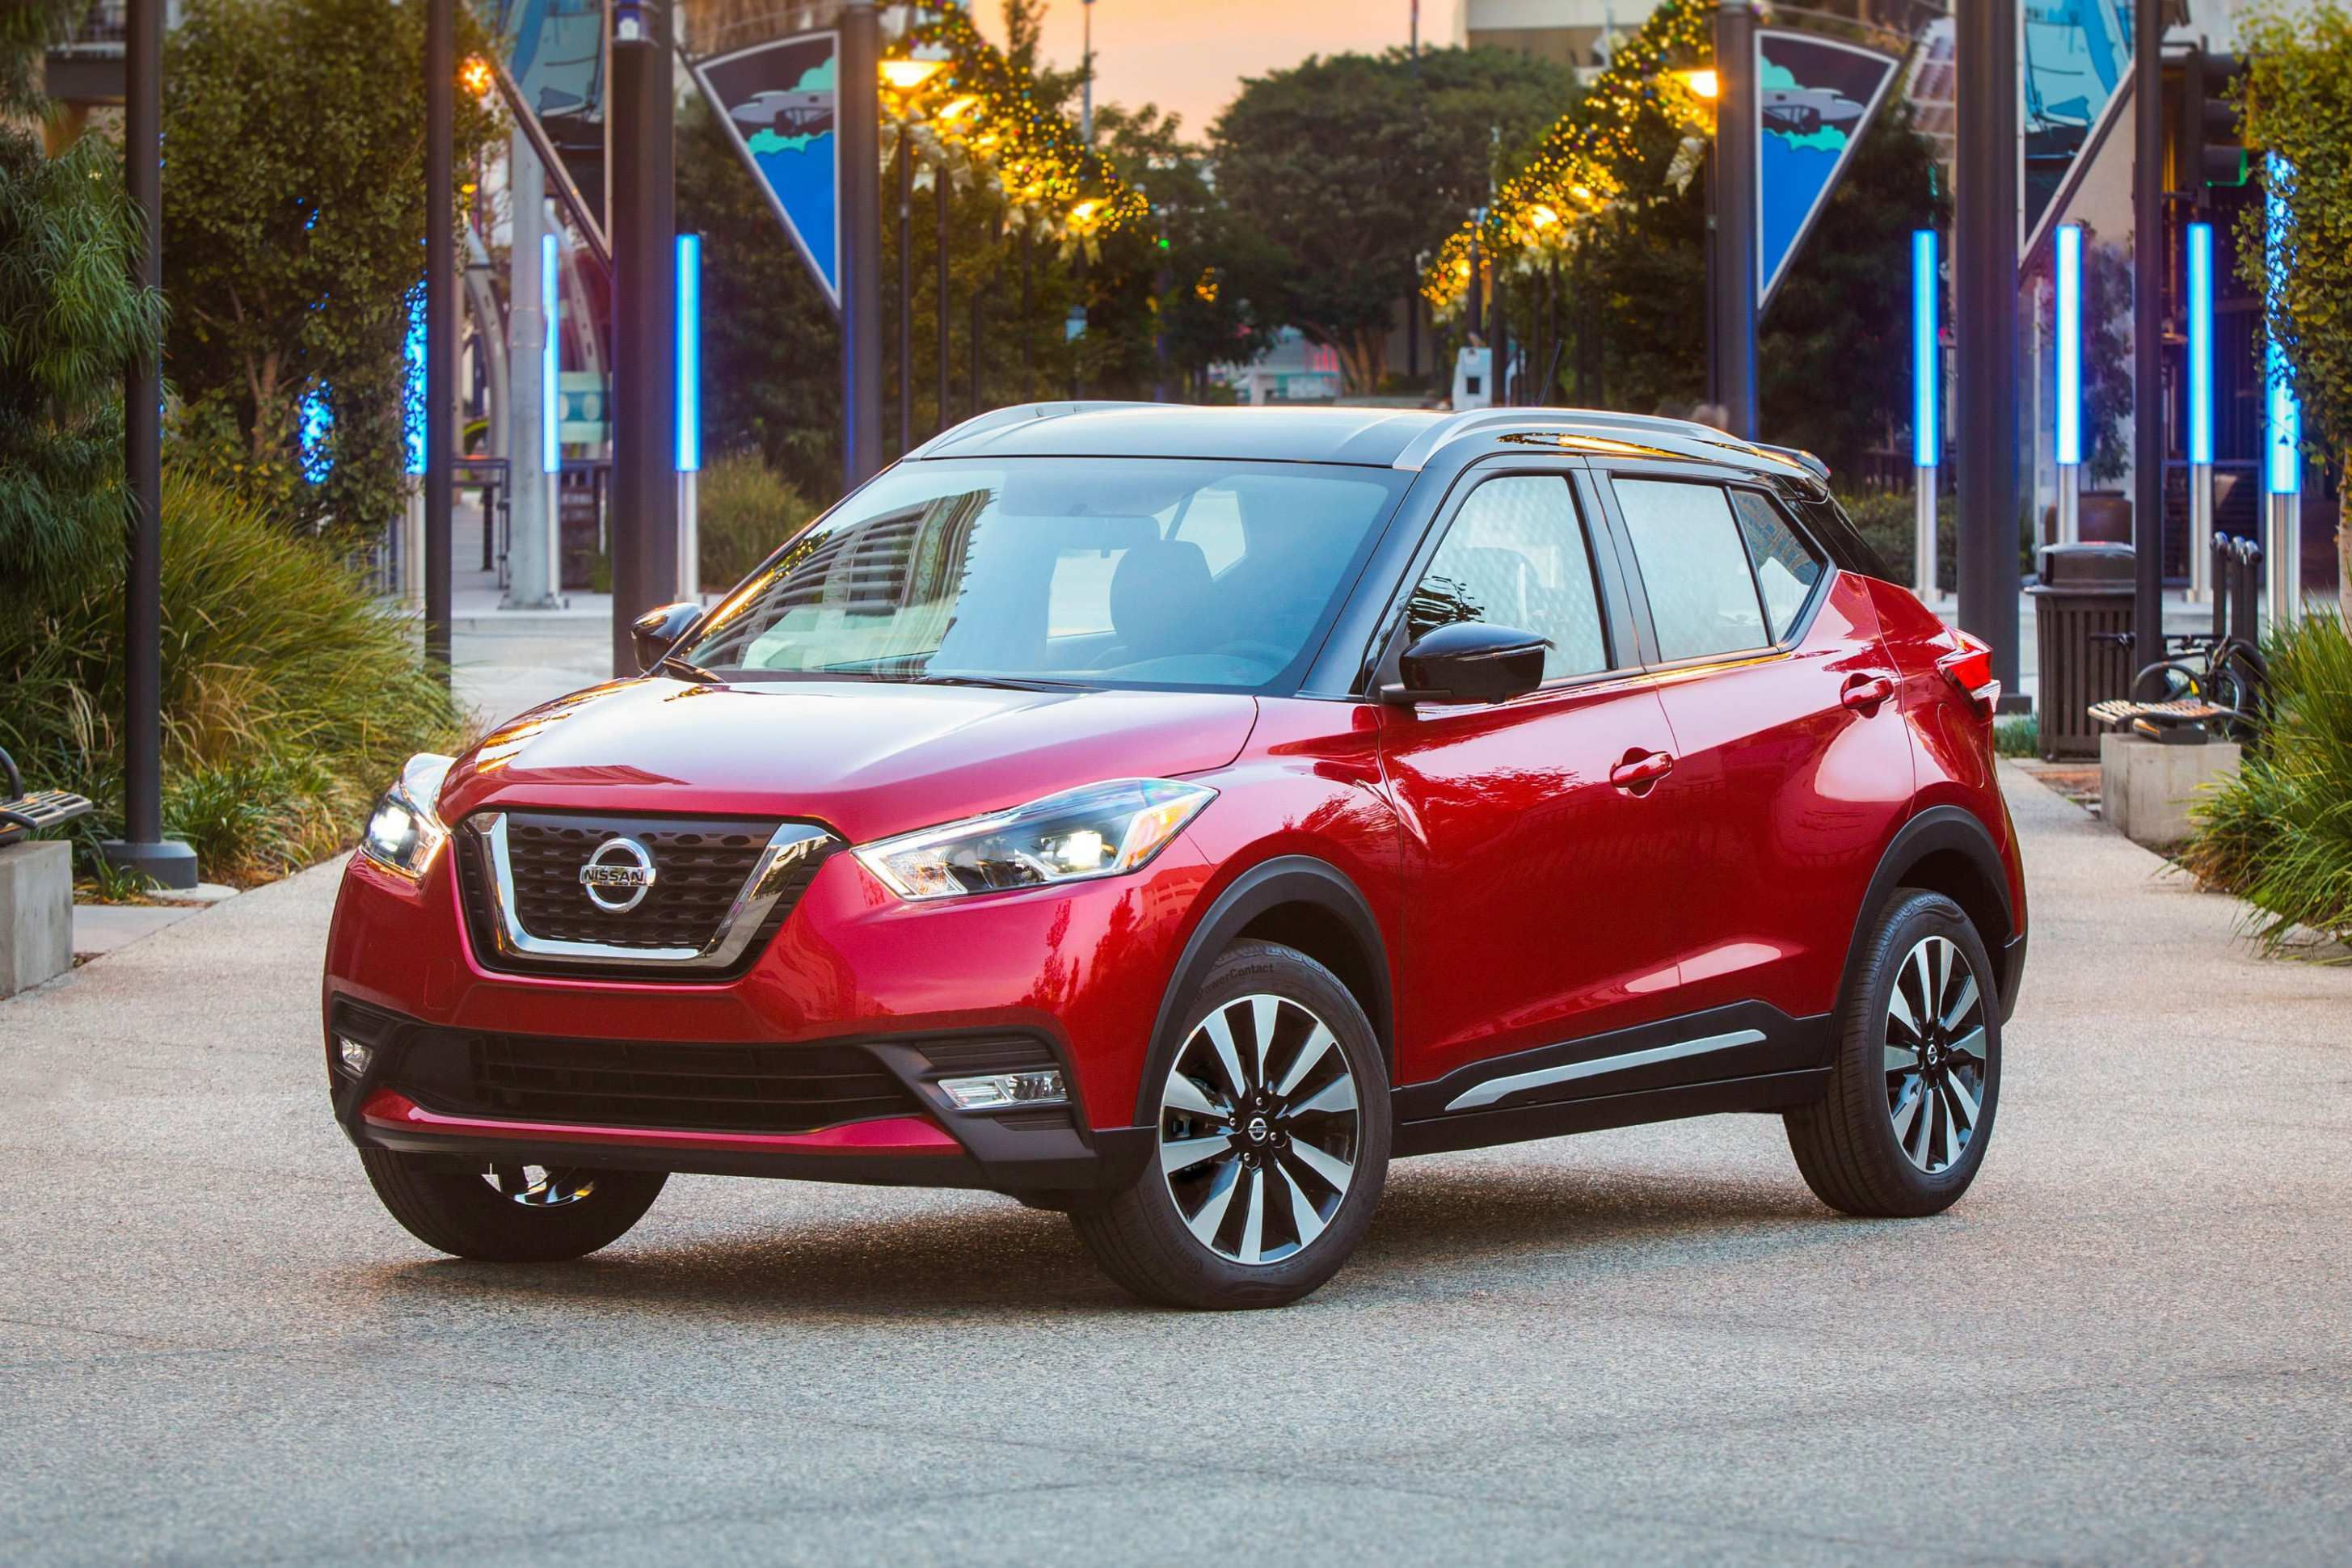 26 Best Review Nissan Kicks 2020 Price and Review with Nissan Kicks 2020